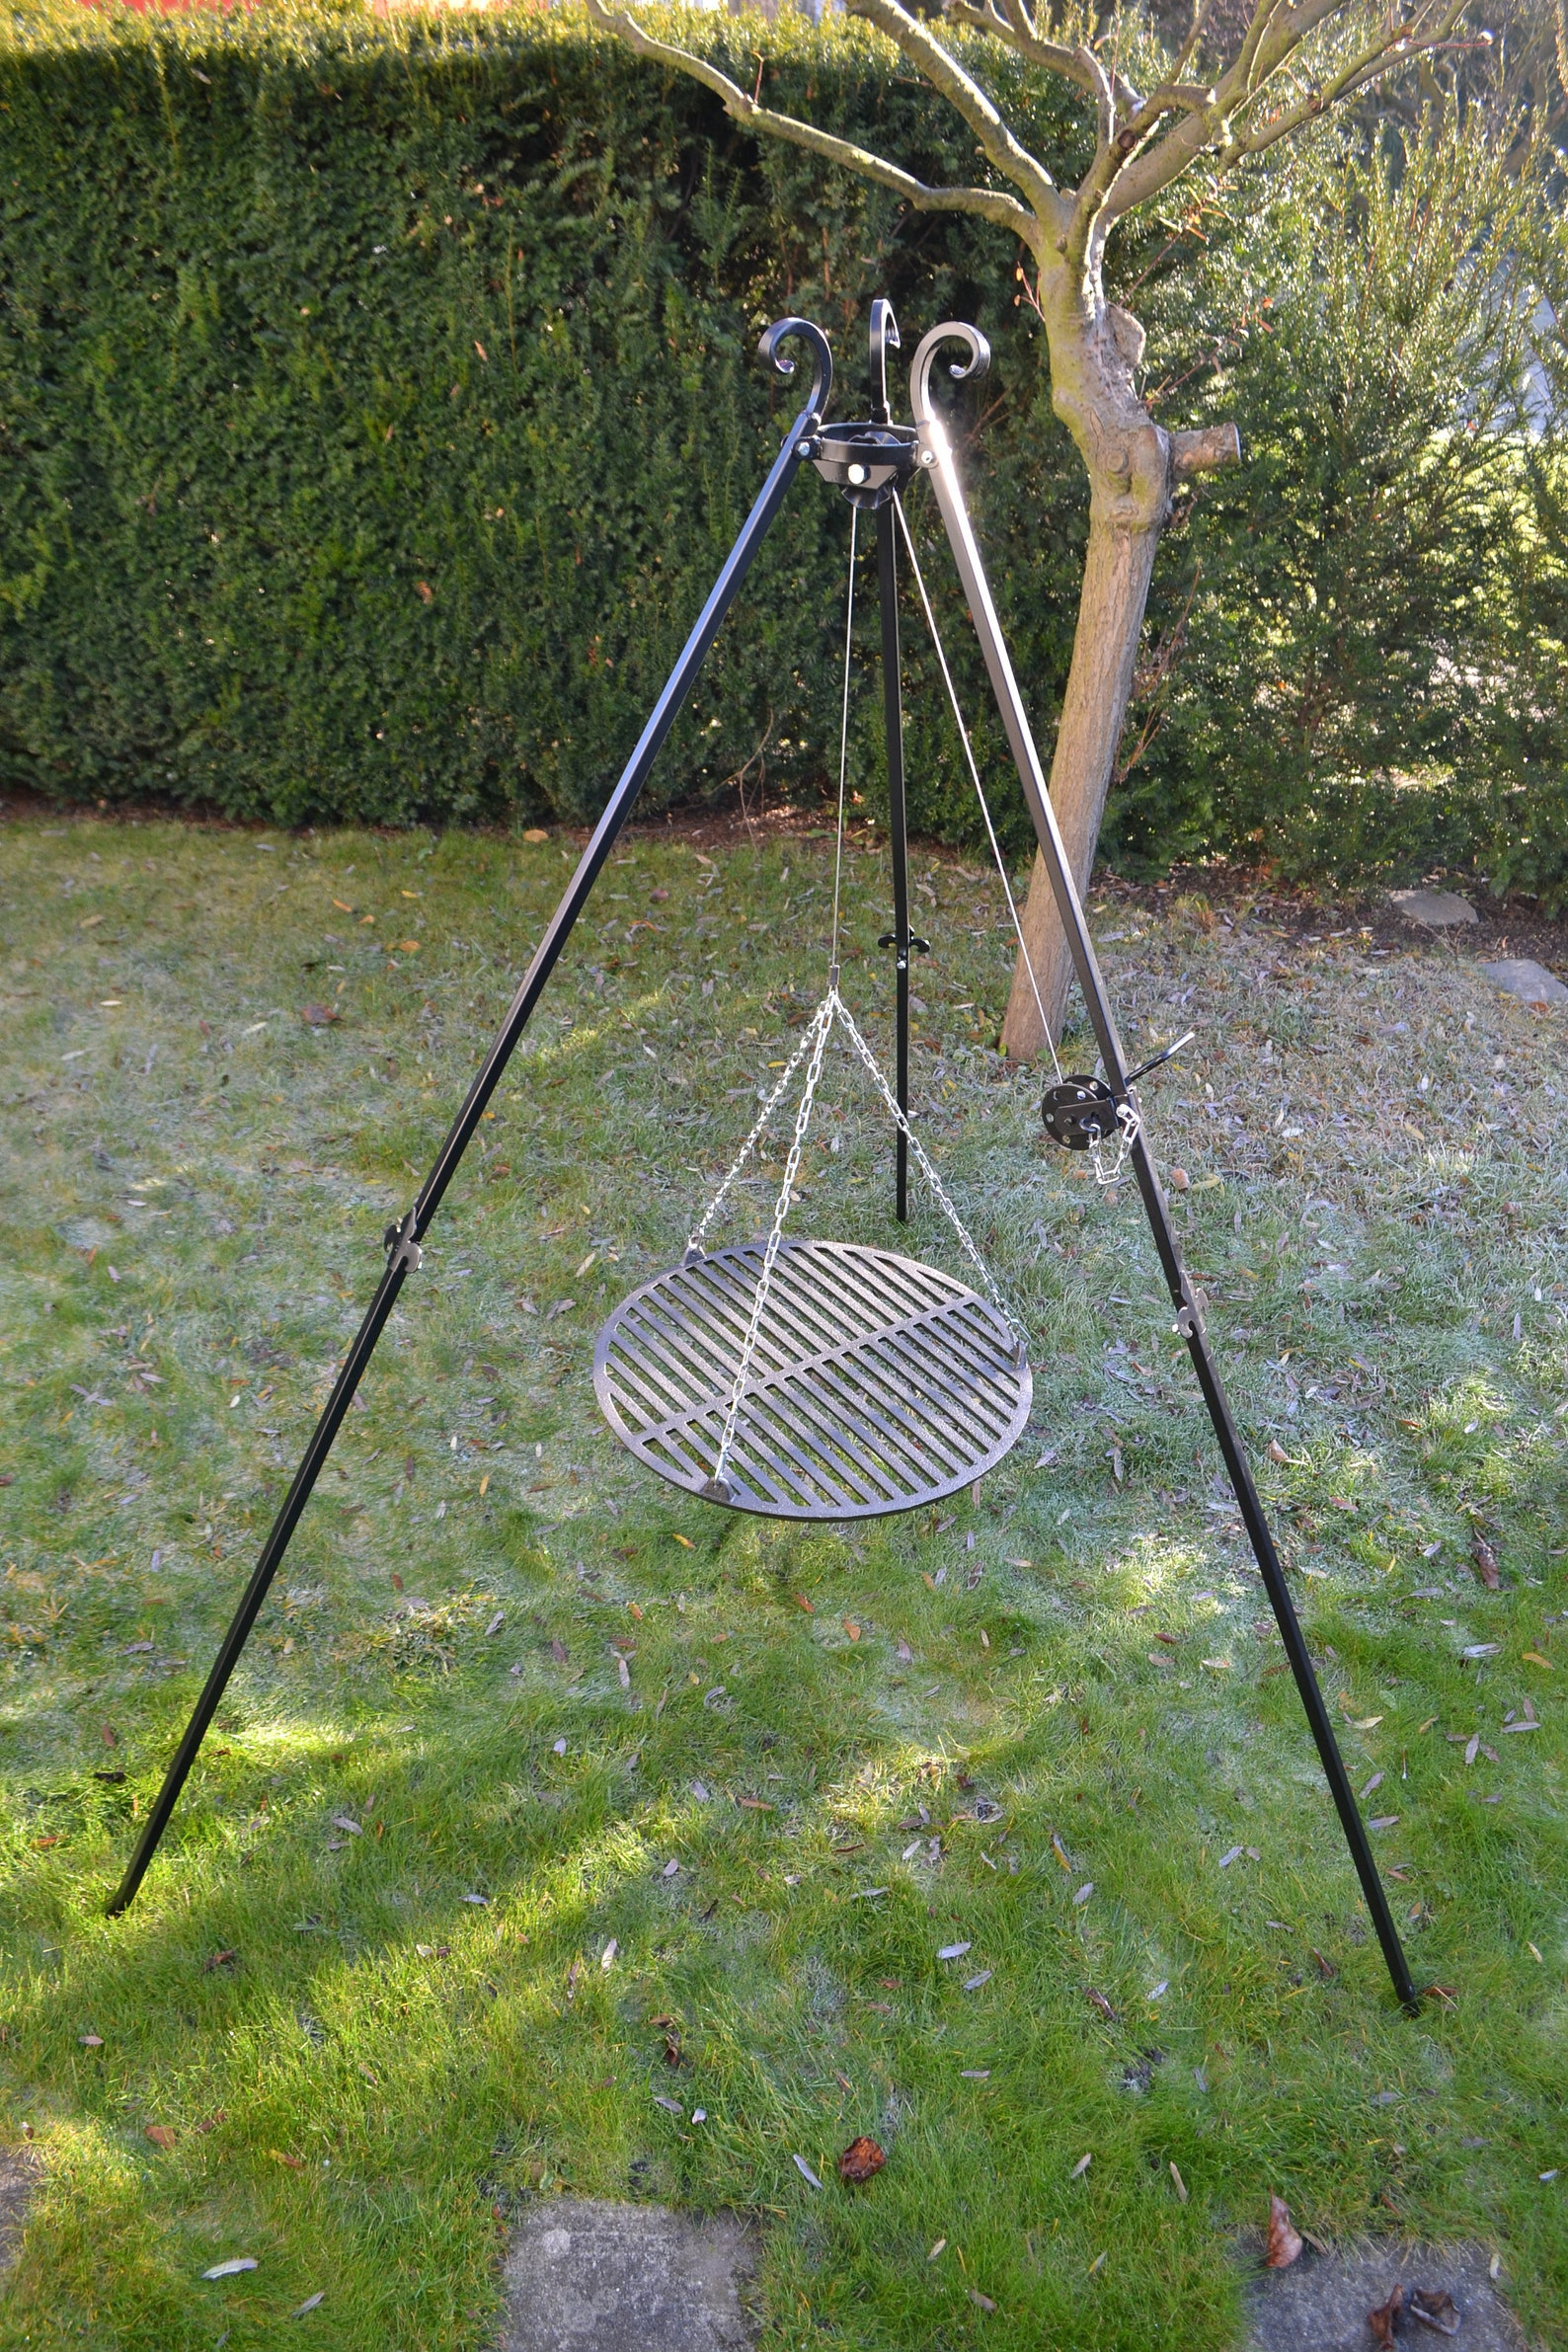 Campfire Cooking Tripod for Cast Iron grill grate